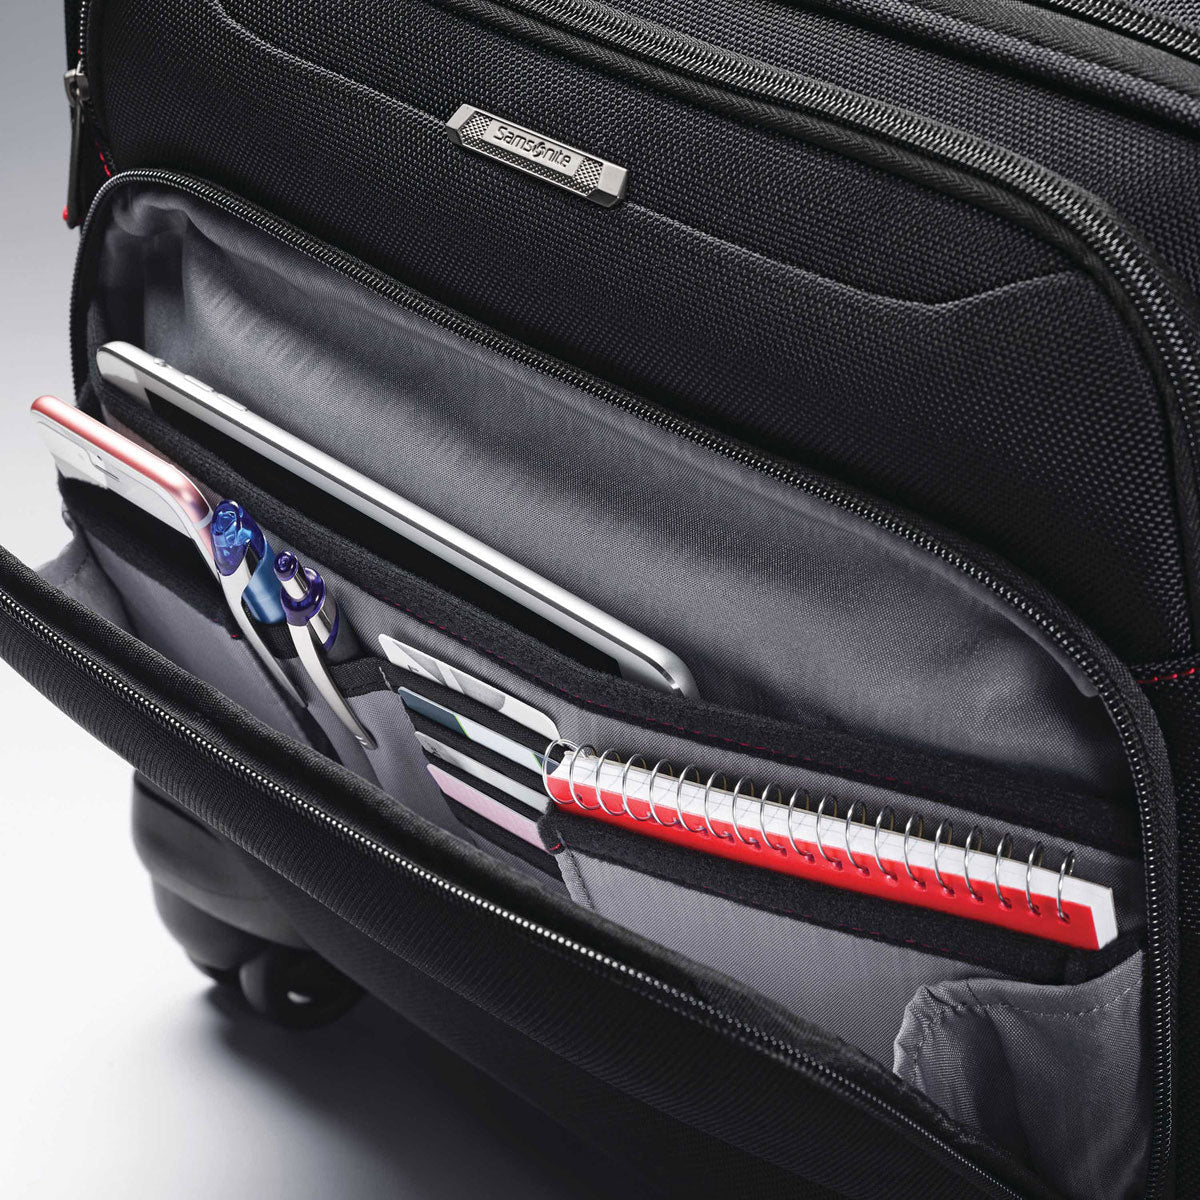 a286f10ed ... Samsonite Xenon 3.0 Spinner Mobile Office - Lexington Luggage ...